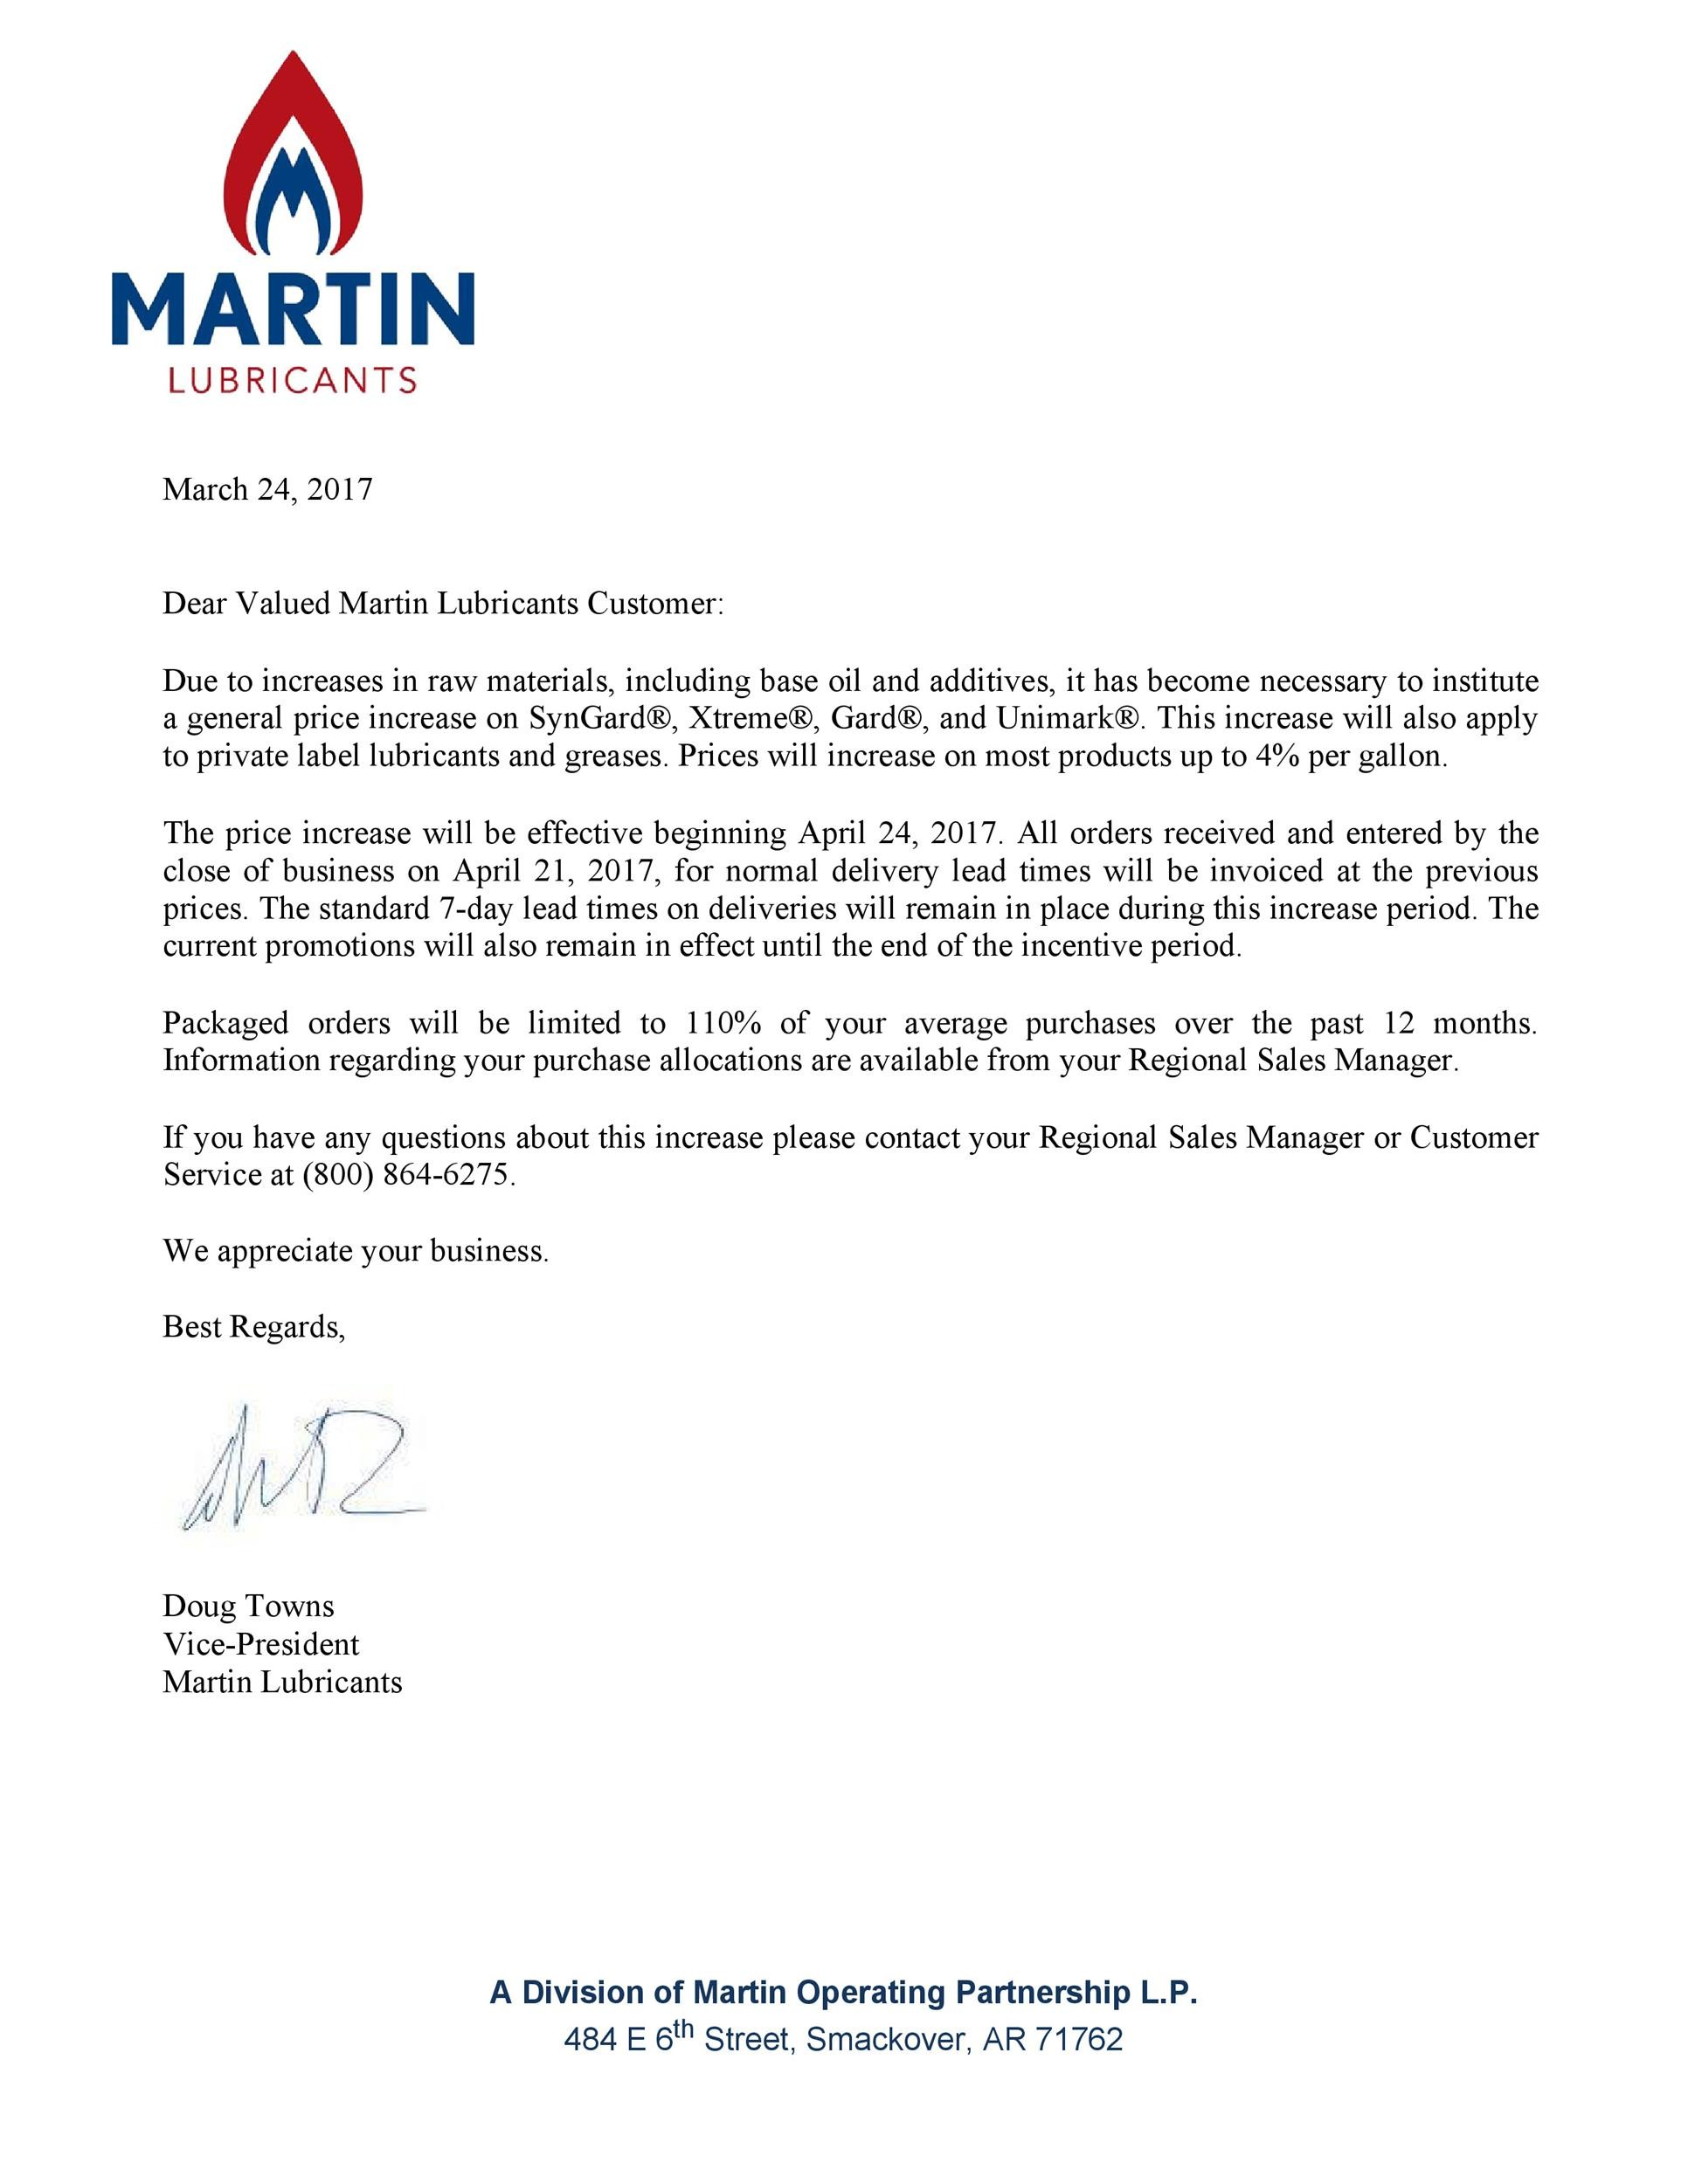 Free price increase letter 29